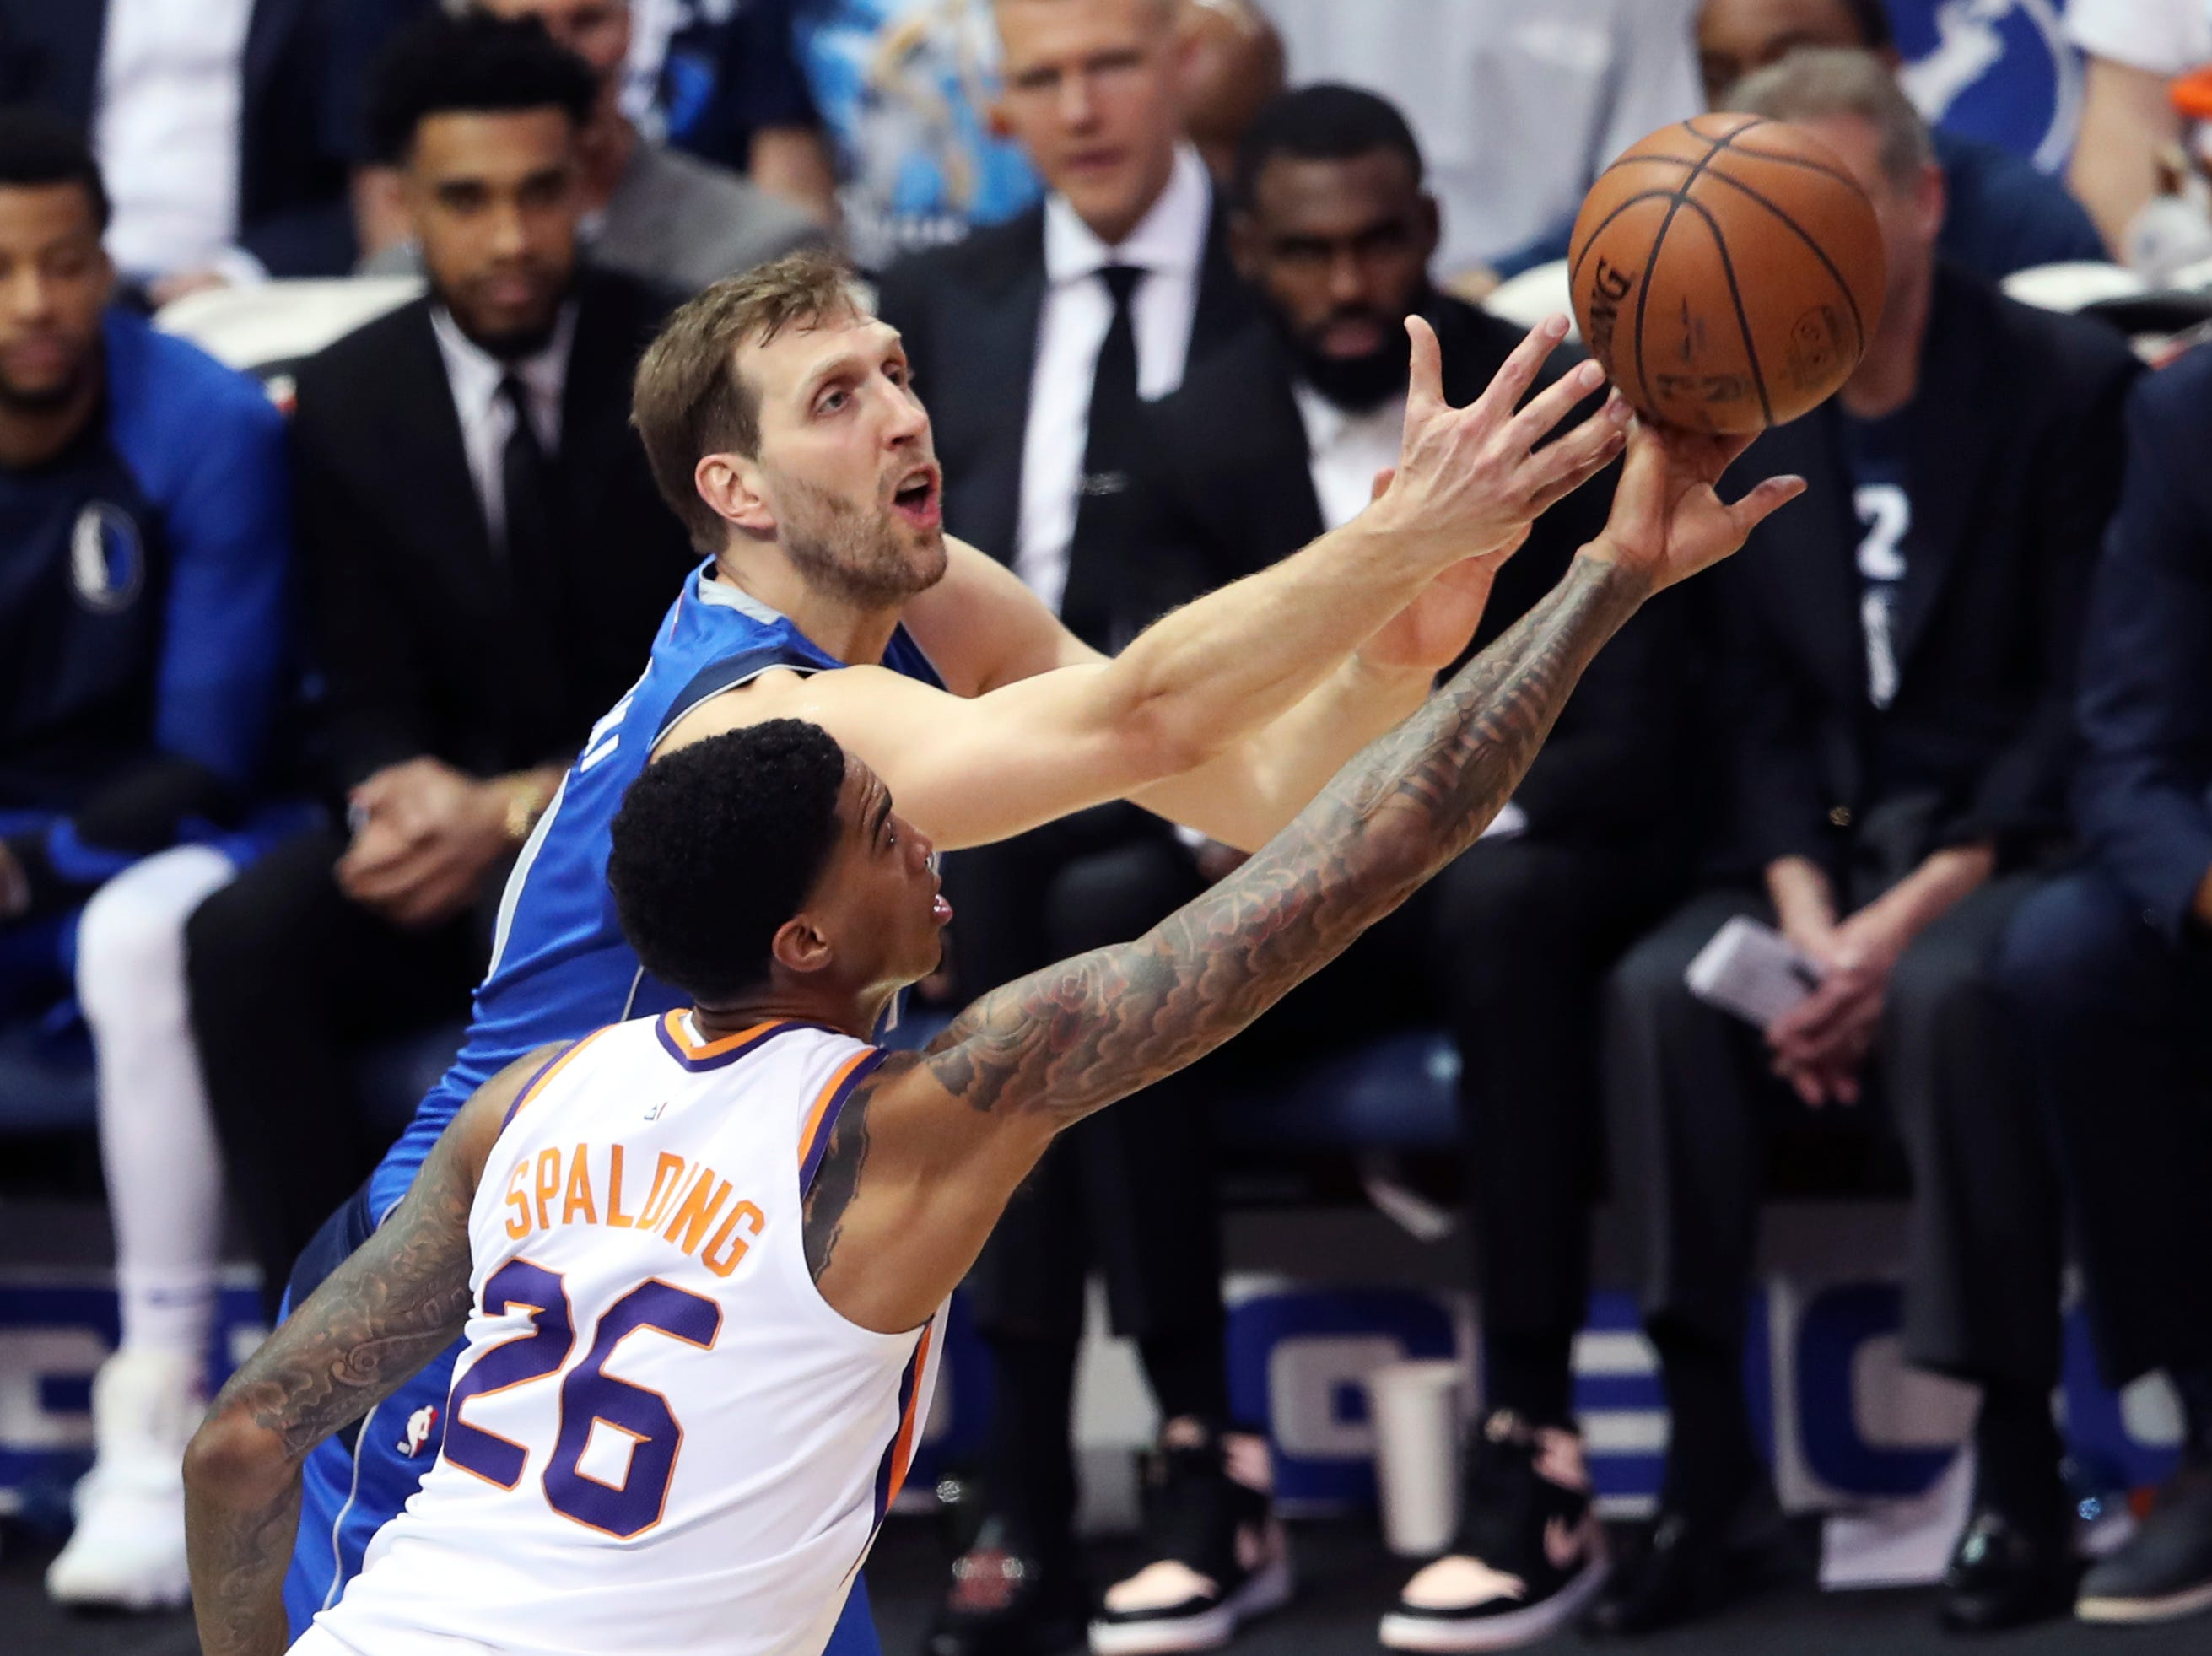 Apr 9, 2019; Dallas, TX, USA; Dallas Mavericks forward Dirk Nowitzki (41) and Phoenix Suns forward Ray Spalding (26) go for a loose ball during the first half at American Airlines Center. Mandatory Credit: Kevin Jairaj-USA TODAY Sports